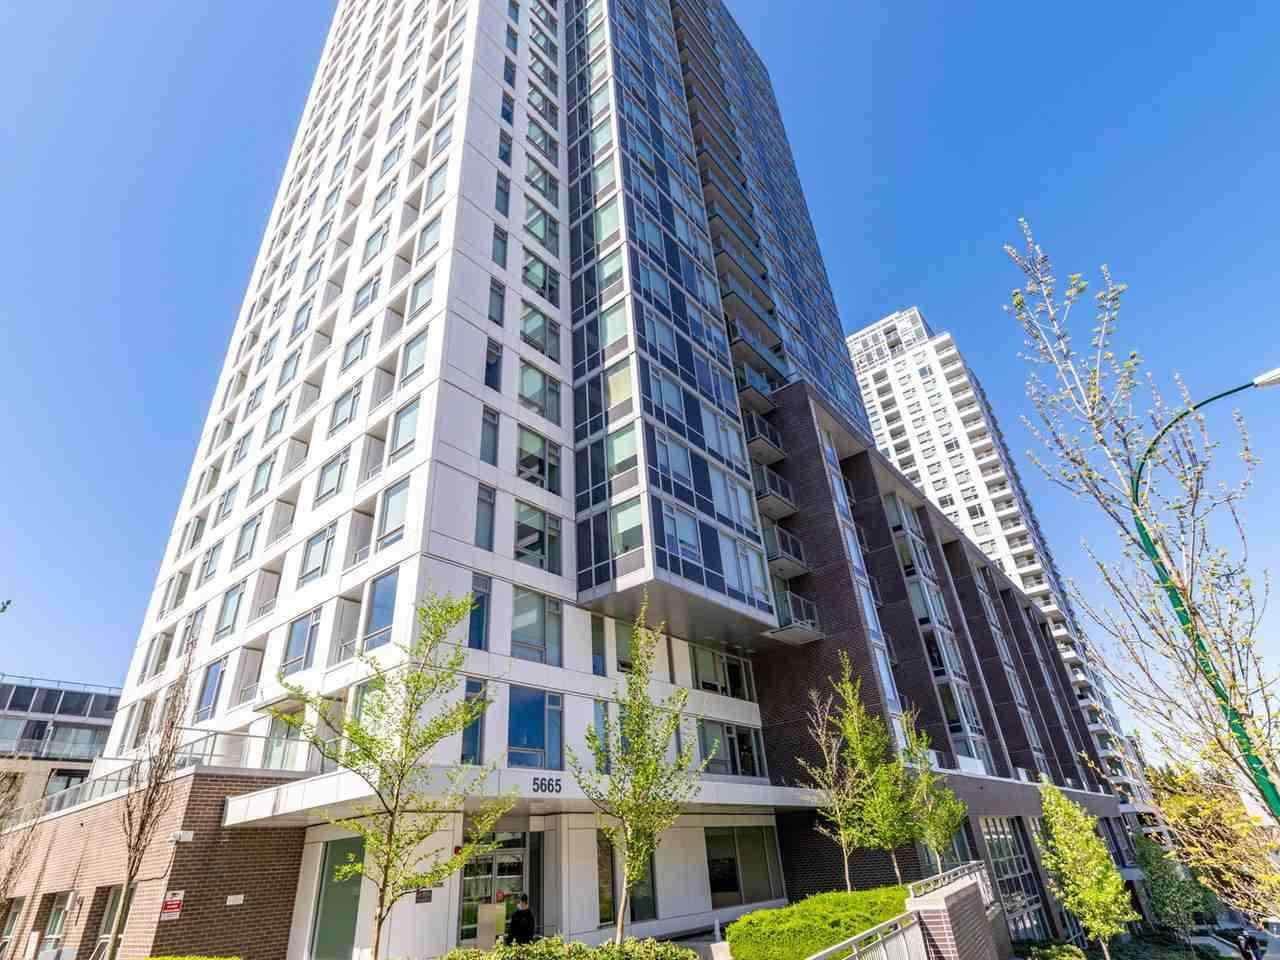 2610 5665 BOUNDARY ROAD - Collingwood VE Apartment/Condo for sale, 1 Bedroom (R2576666)